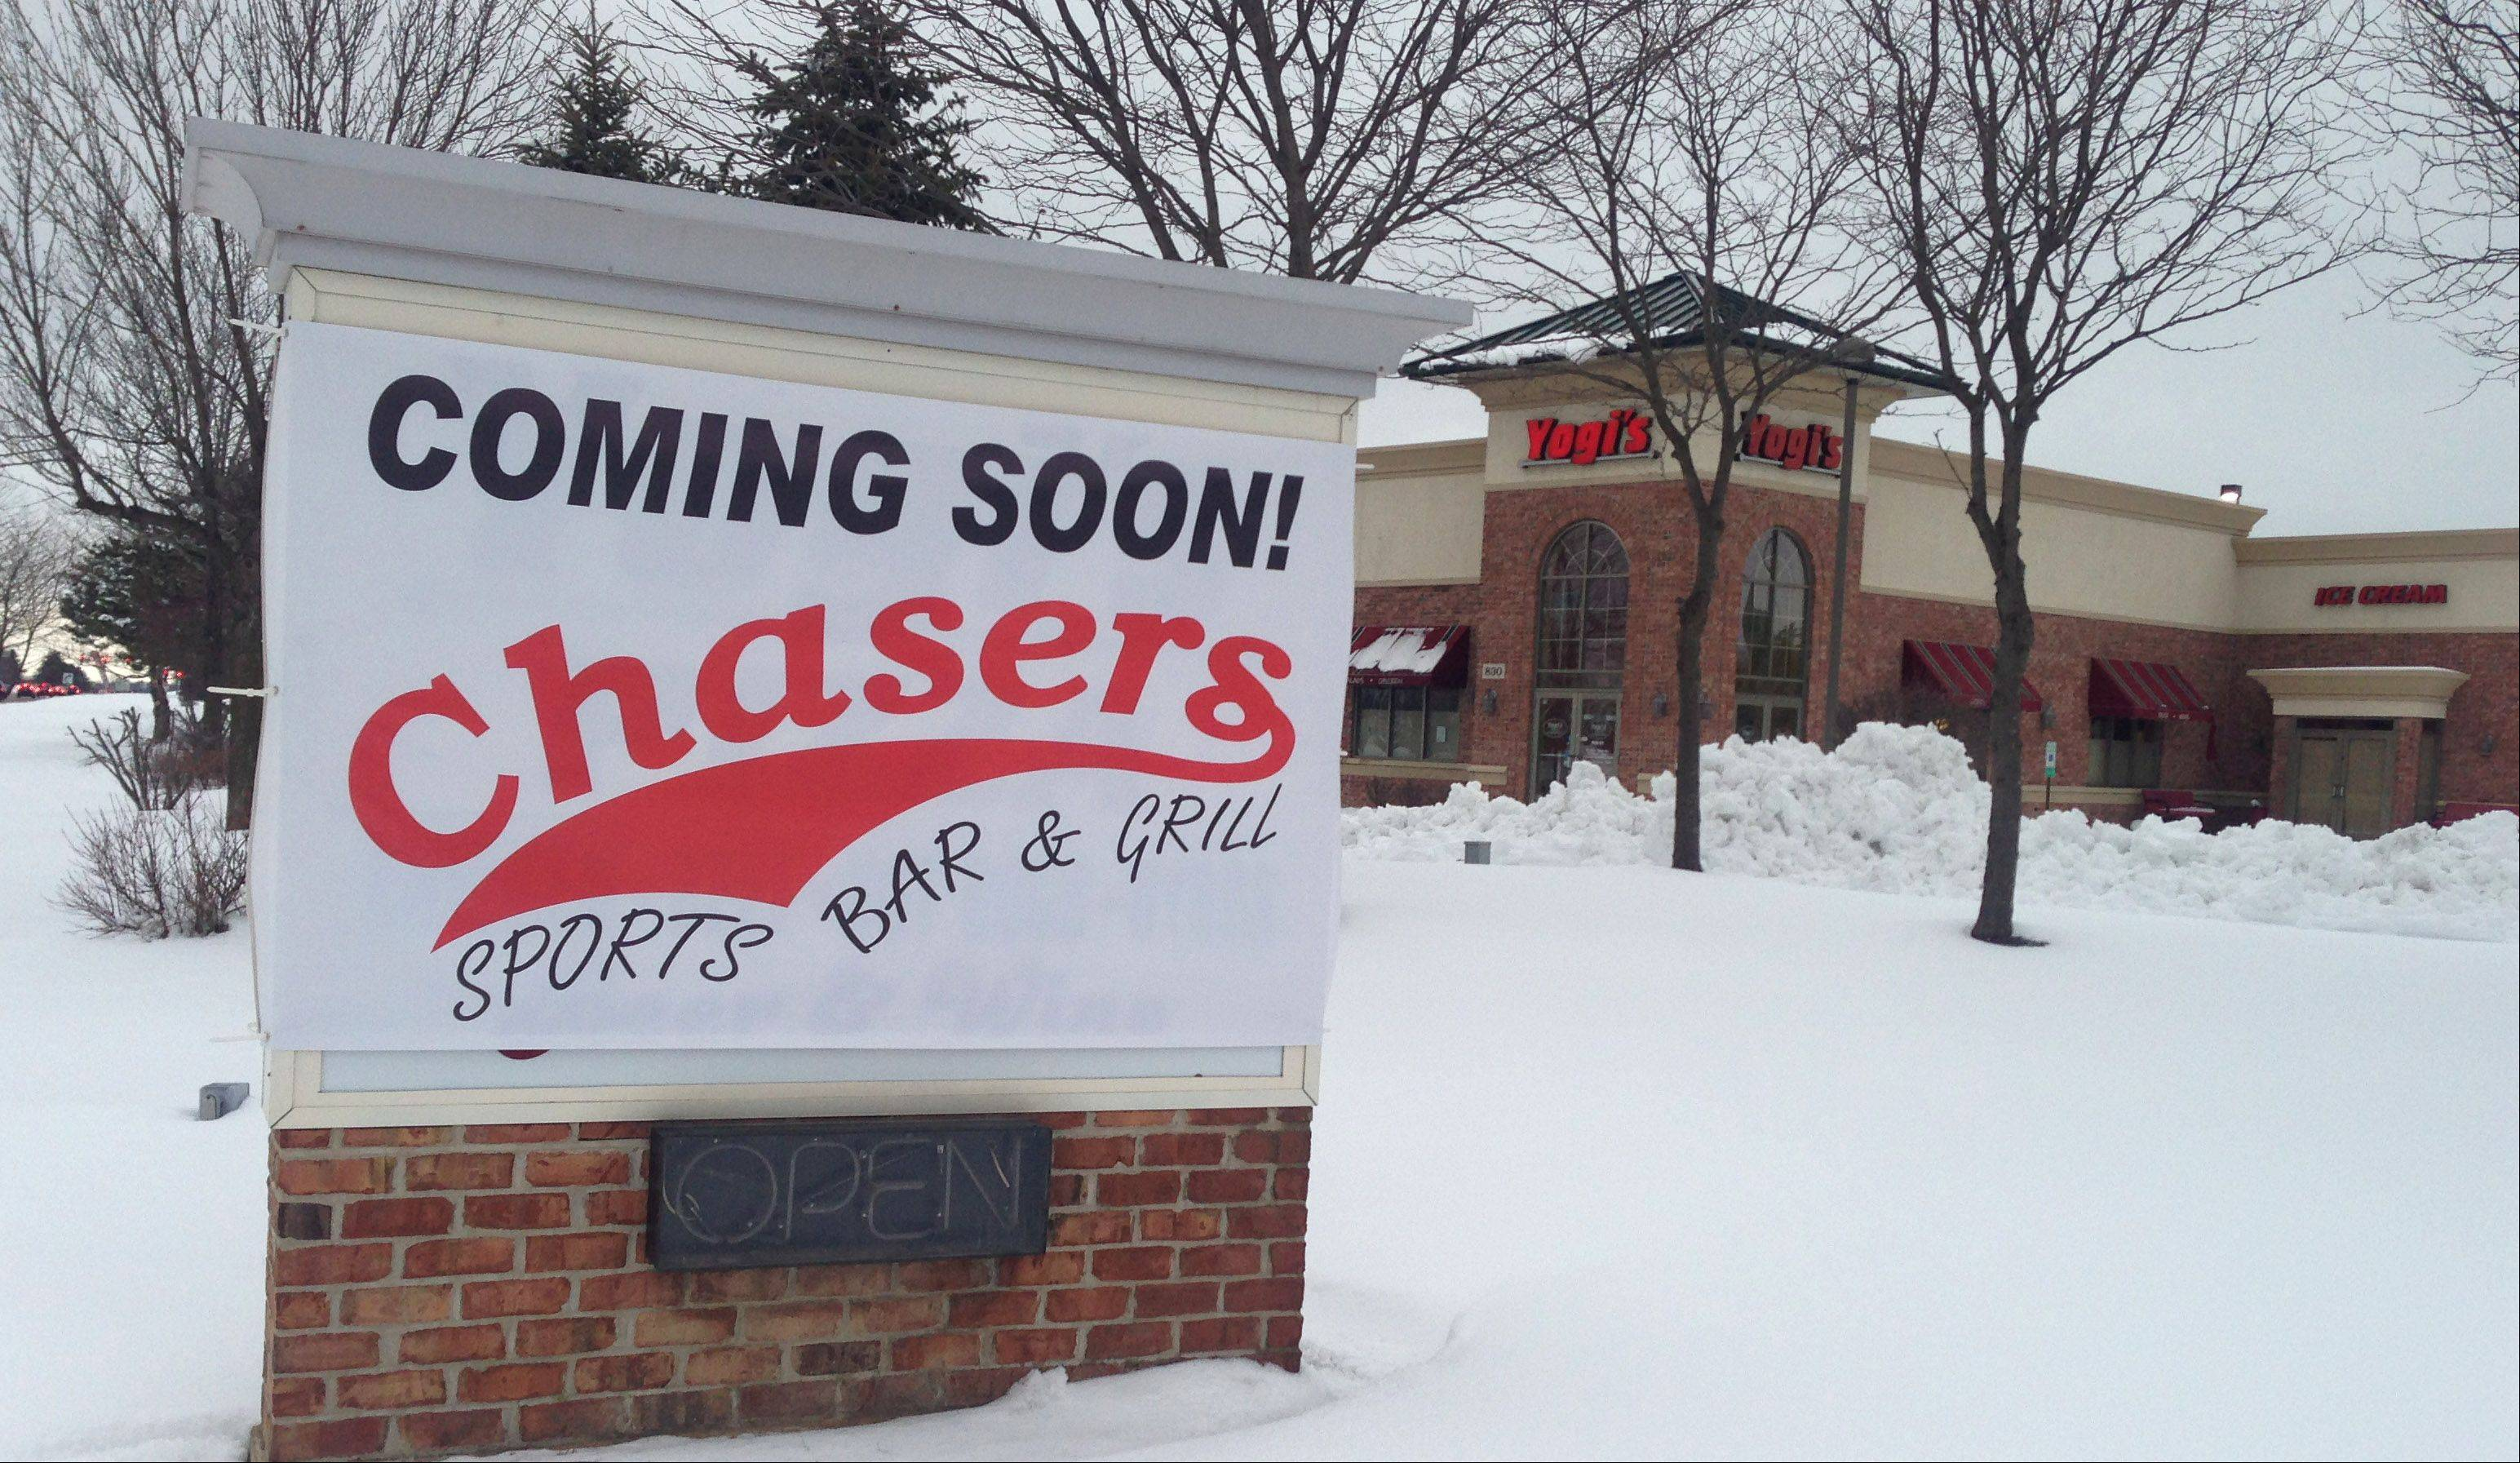 Chasers Sports Bar & Grill, which has operated in Niles for more than 20 years, is expanding to replace the vacated Yogi's Pizza in Lake Zurich.